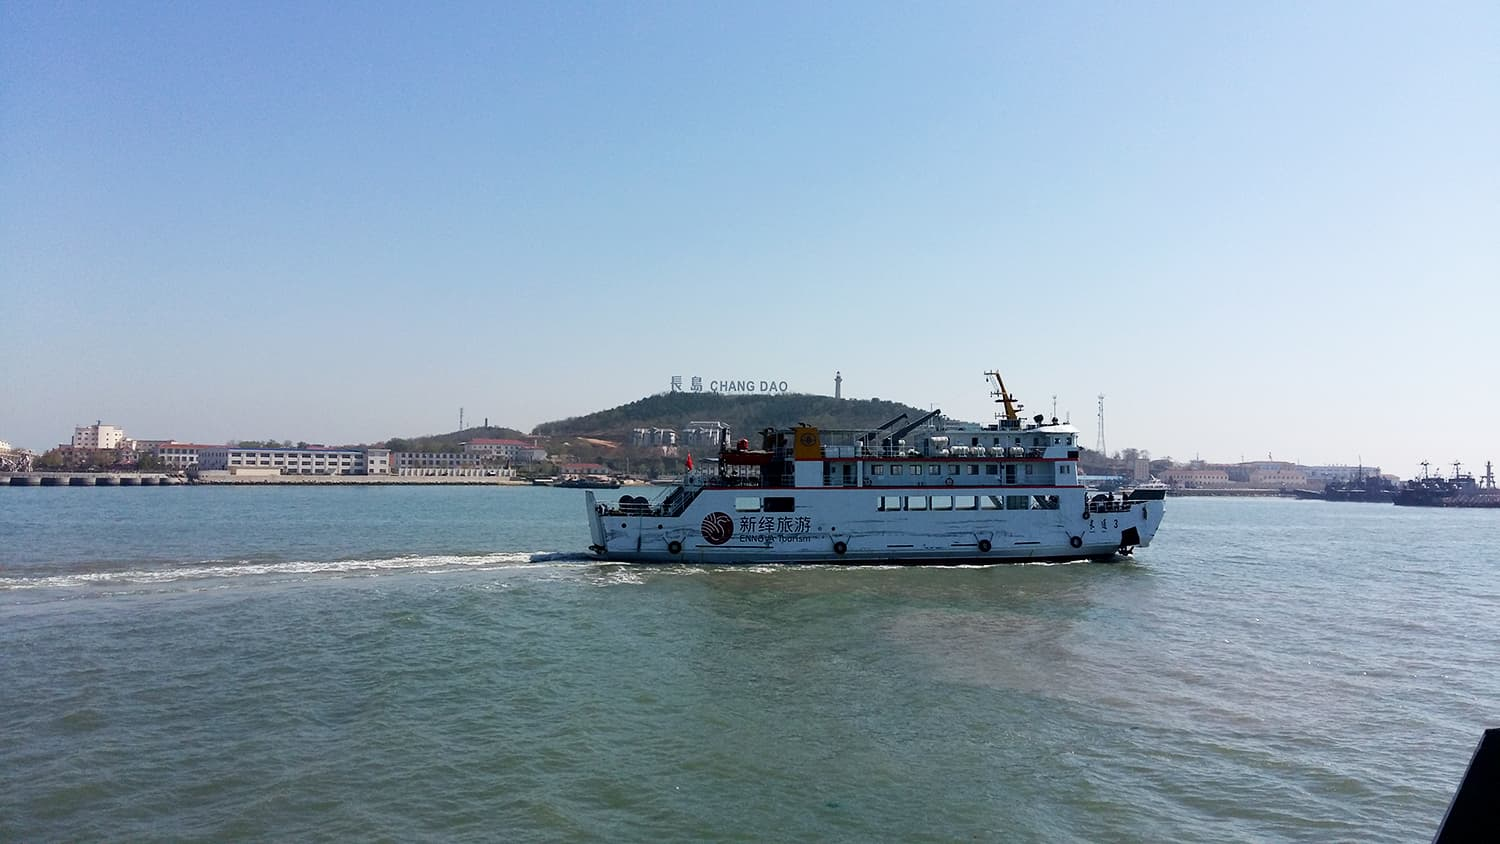 Changdao Island, a wonderful place famous for its rocky beaches.